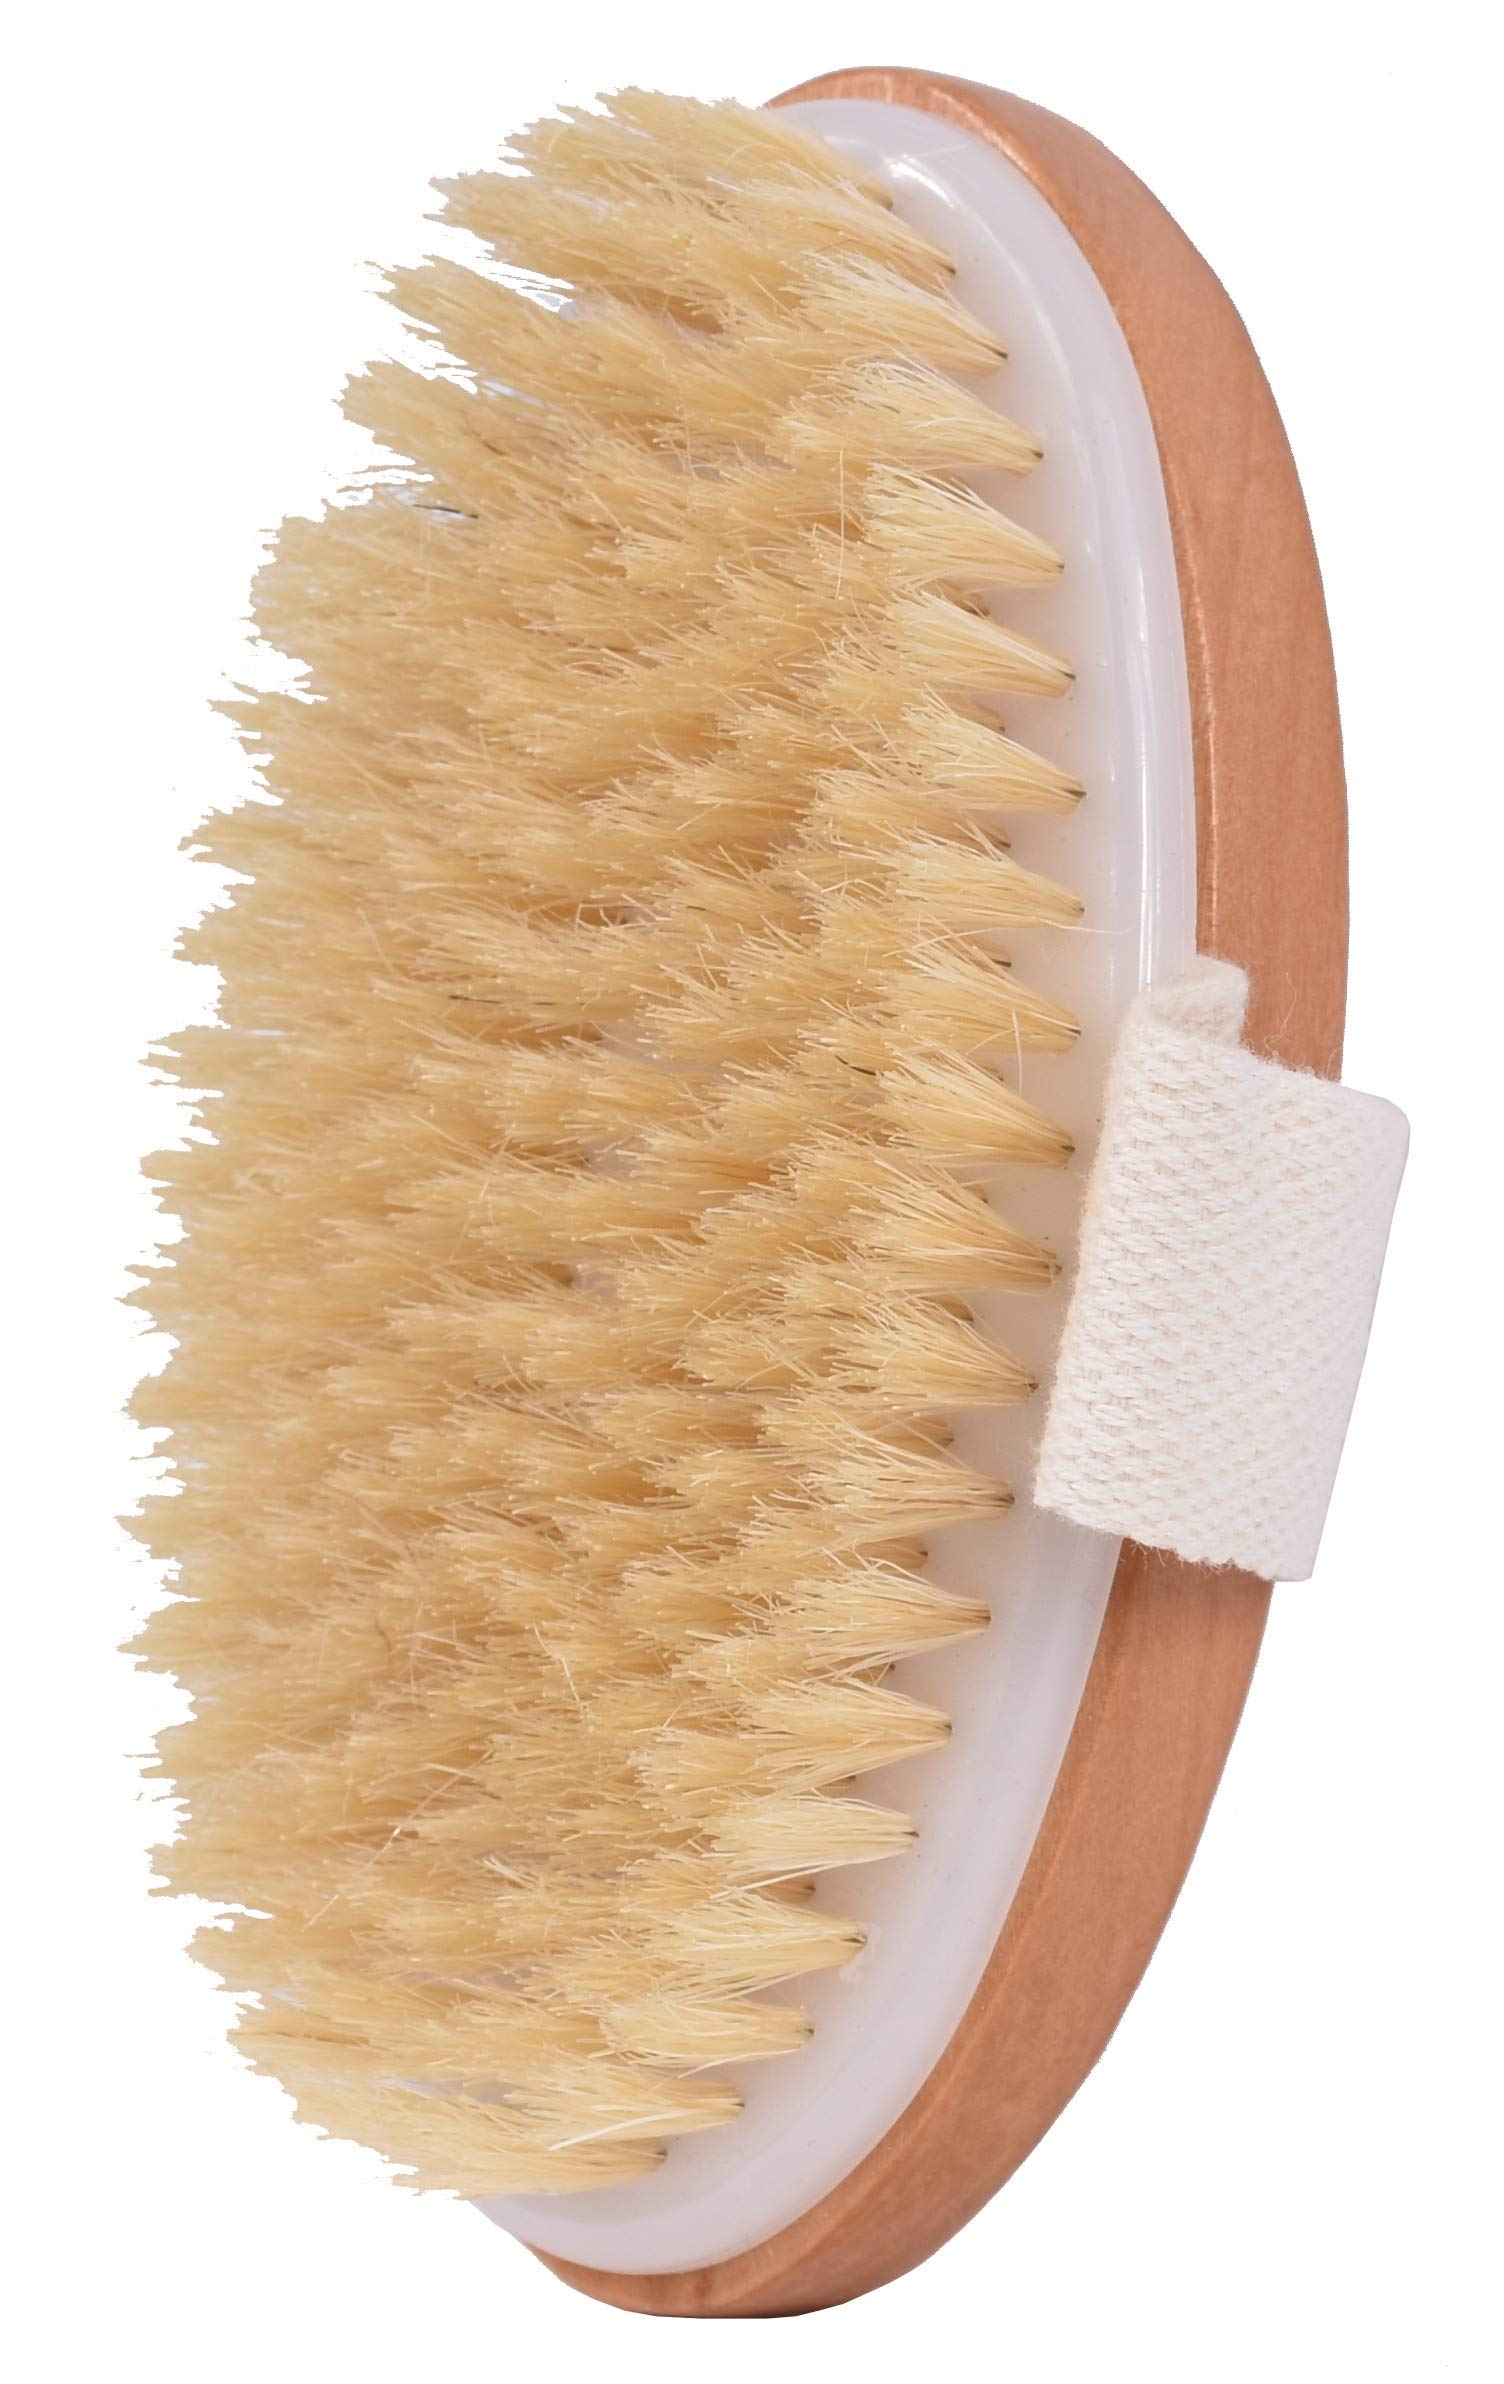 Great hand held dry brush